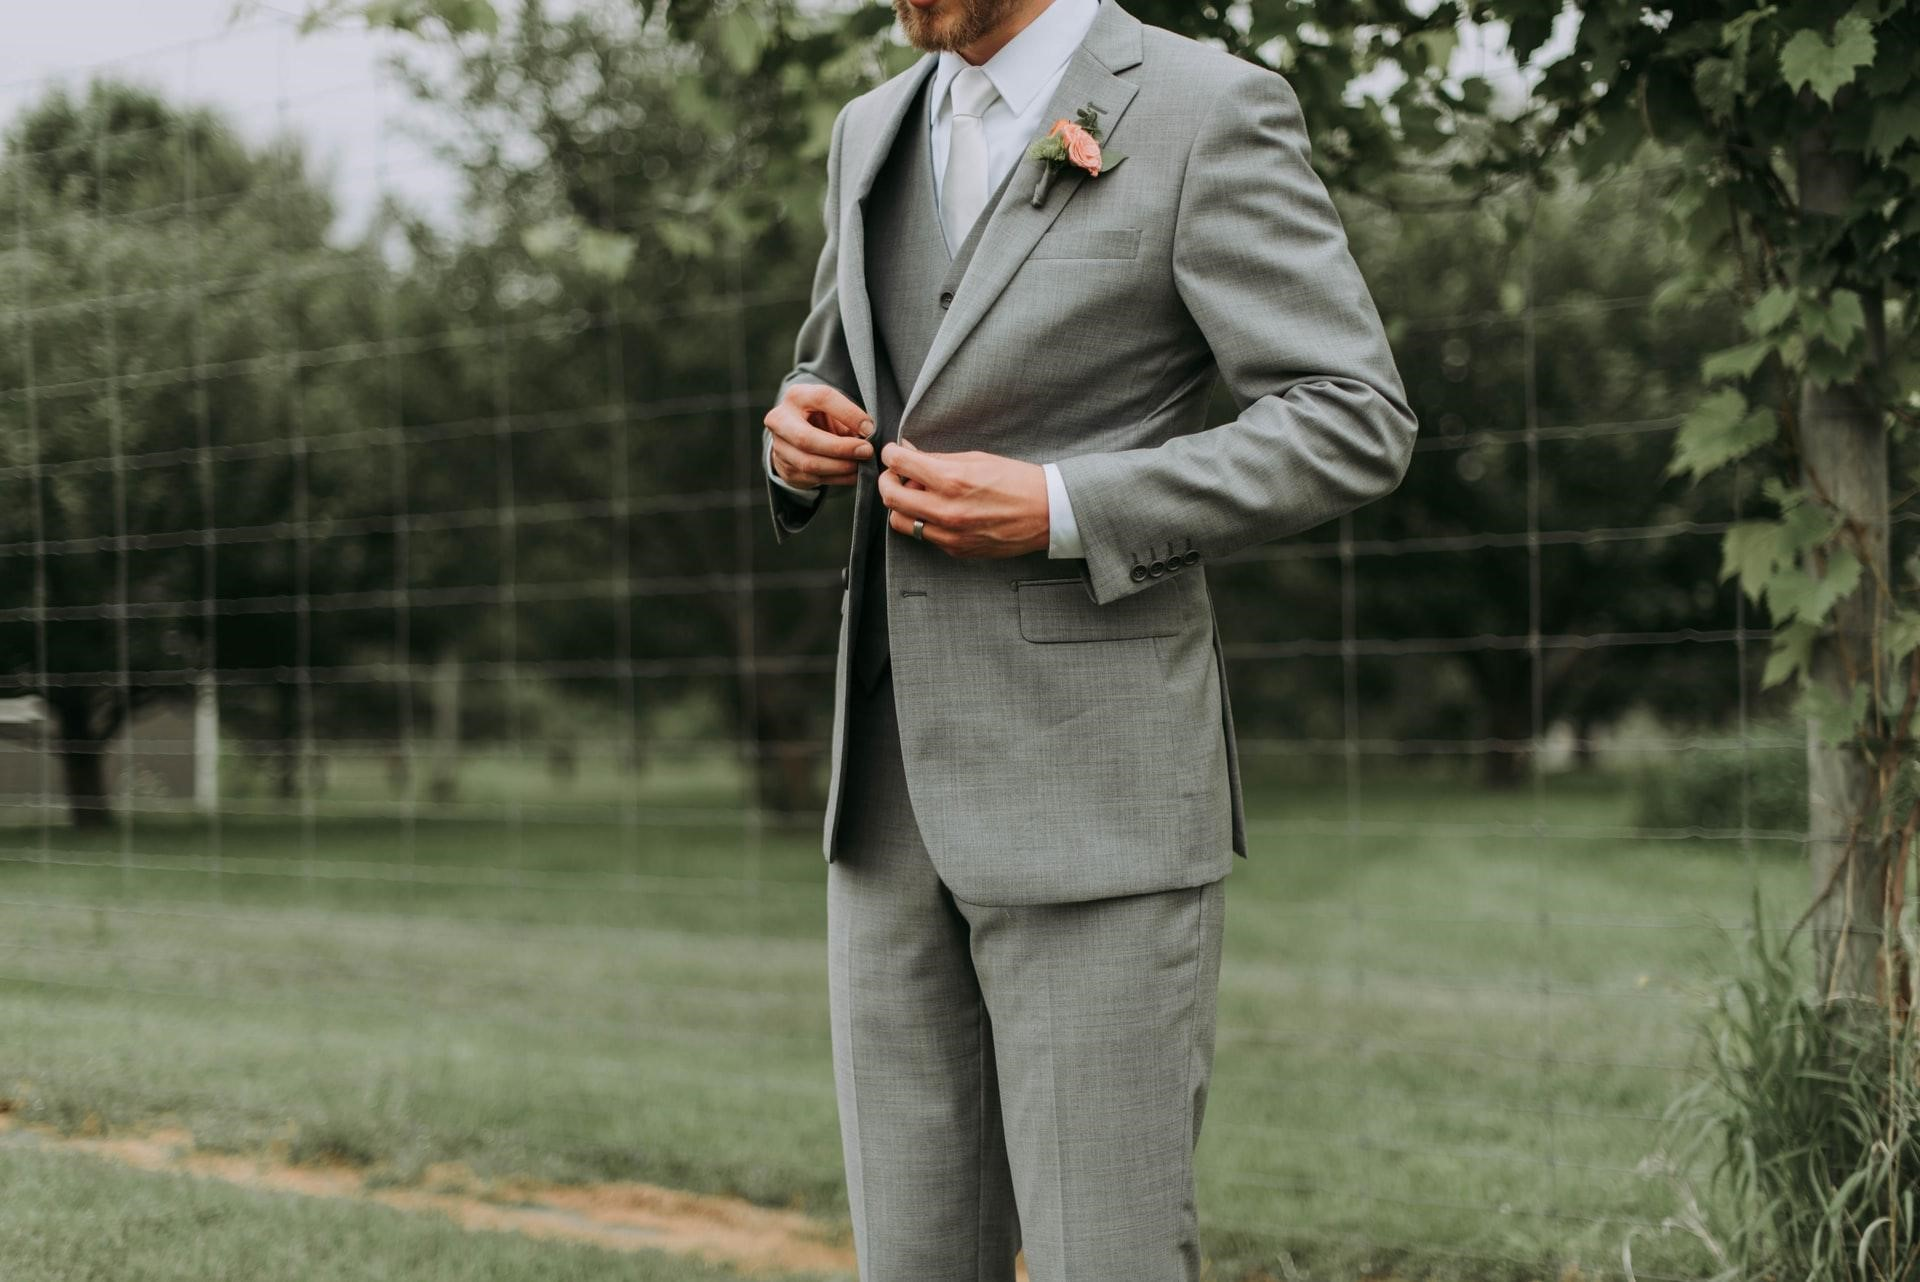 A Groom's Guide to Dressing Fashionably on His Wedding Day